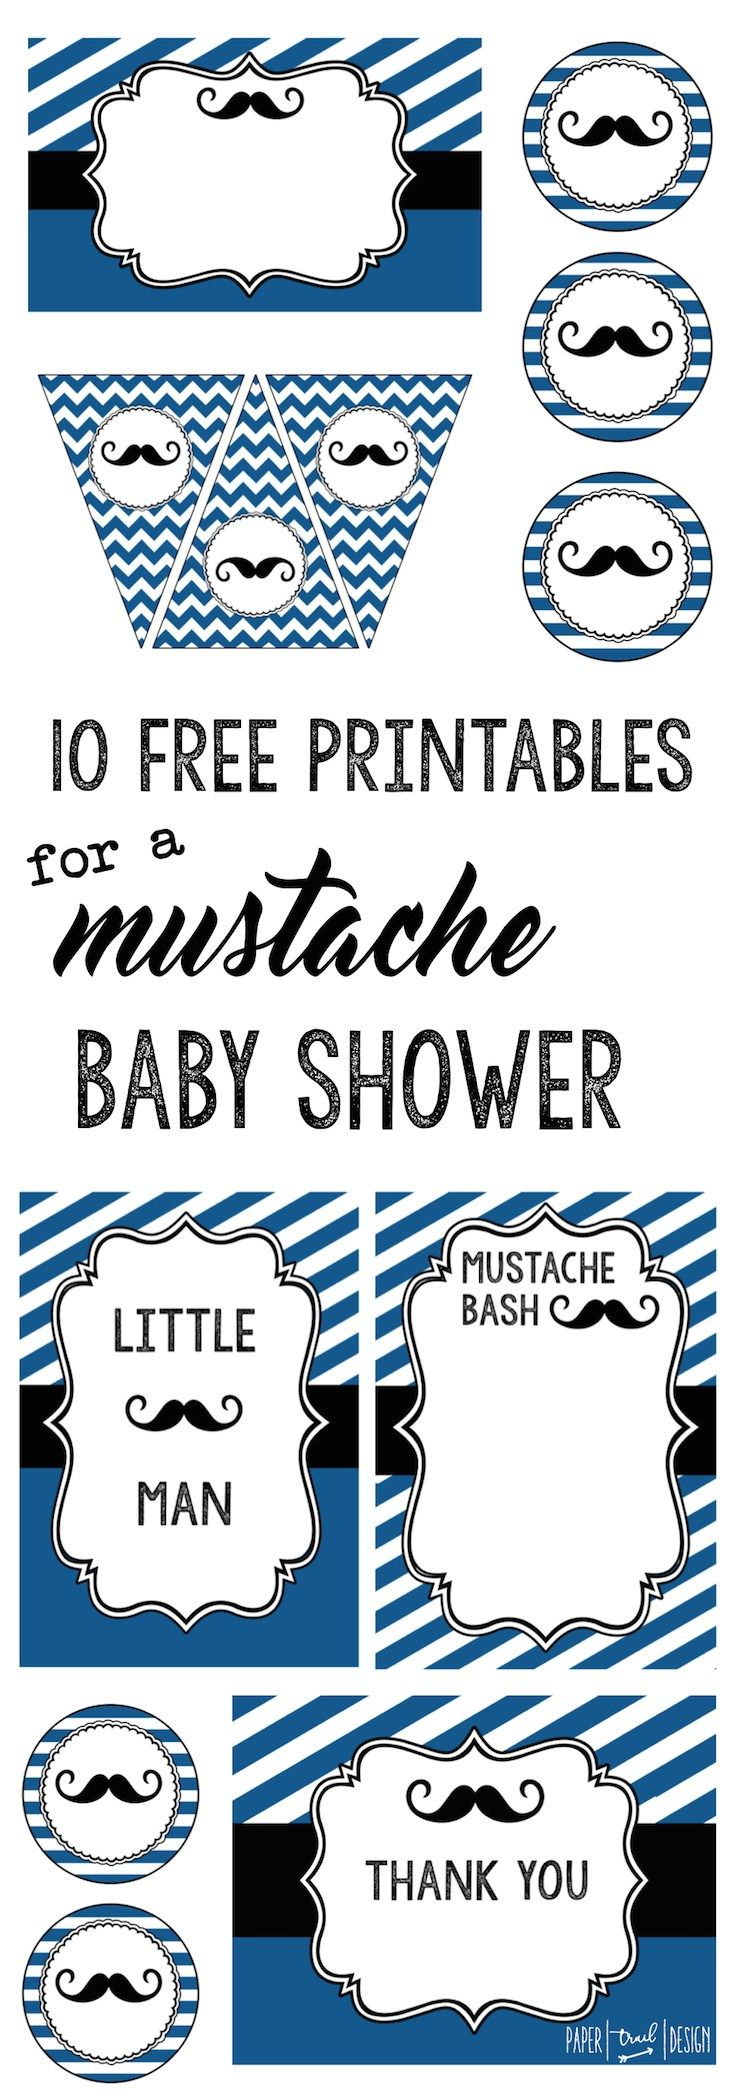 Mustache Party: 10 Free Printables | Mustache baby shower ...